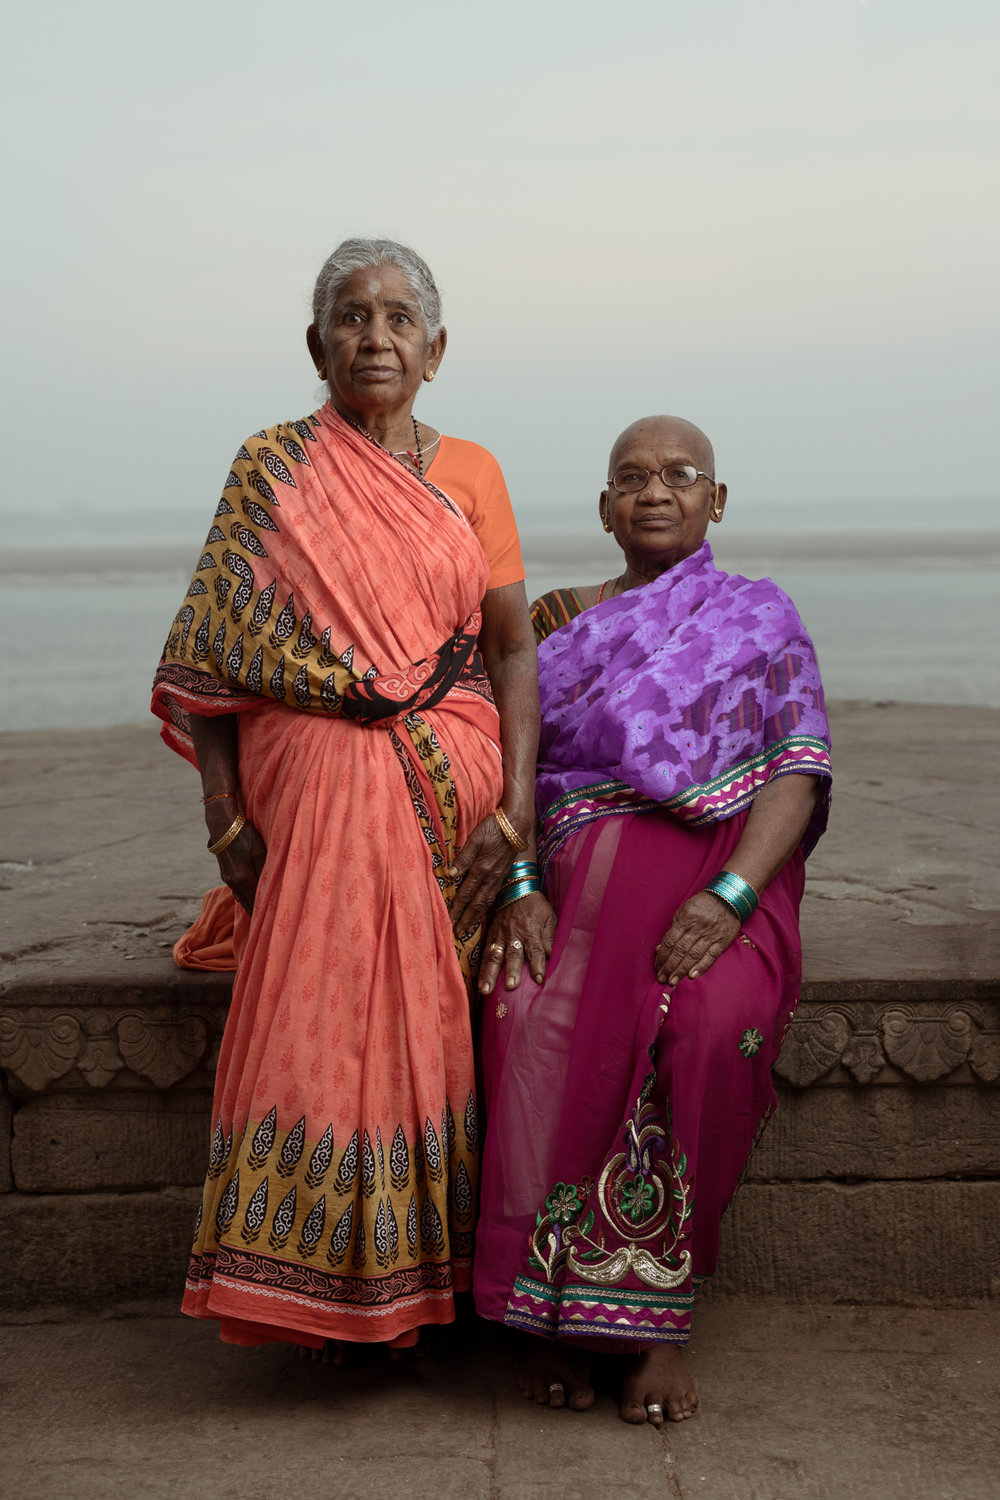 Varanasi_portrait_travel_photography_Manchester_Adventure_Photographer_Jan_Bella12.jpg